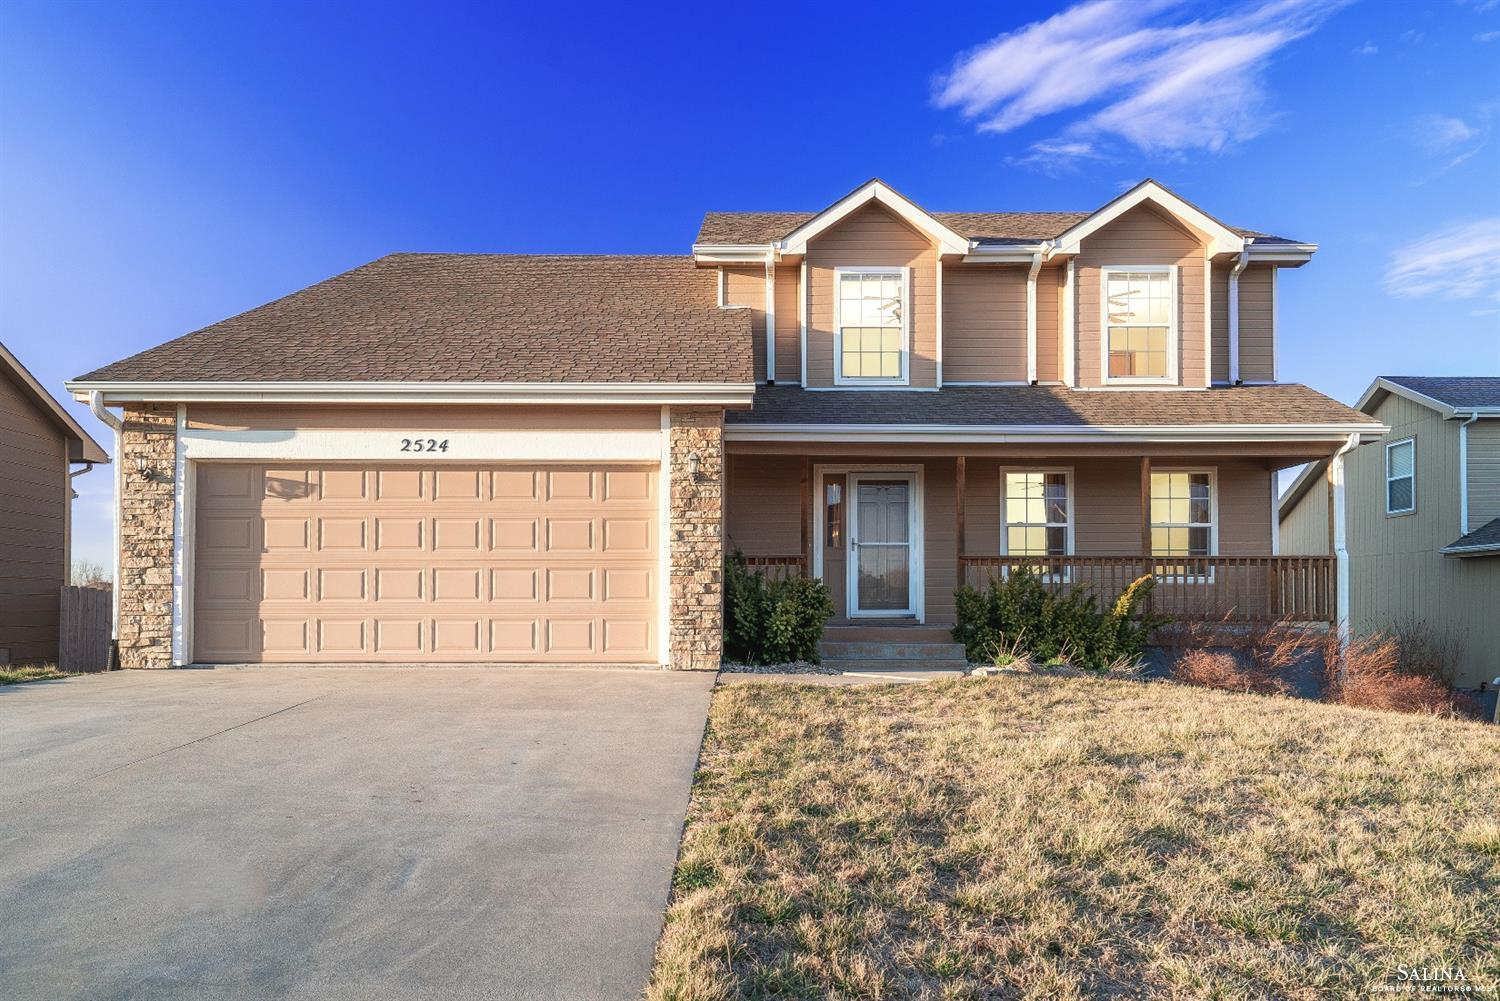 2524 Sutter Woods Court, Junction City, KS 66441